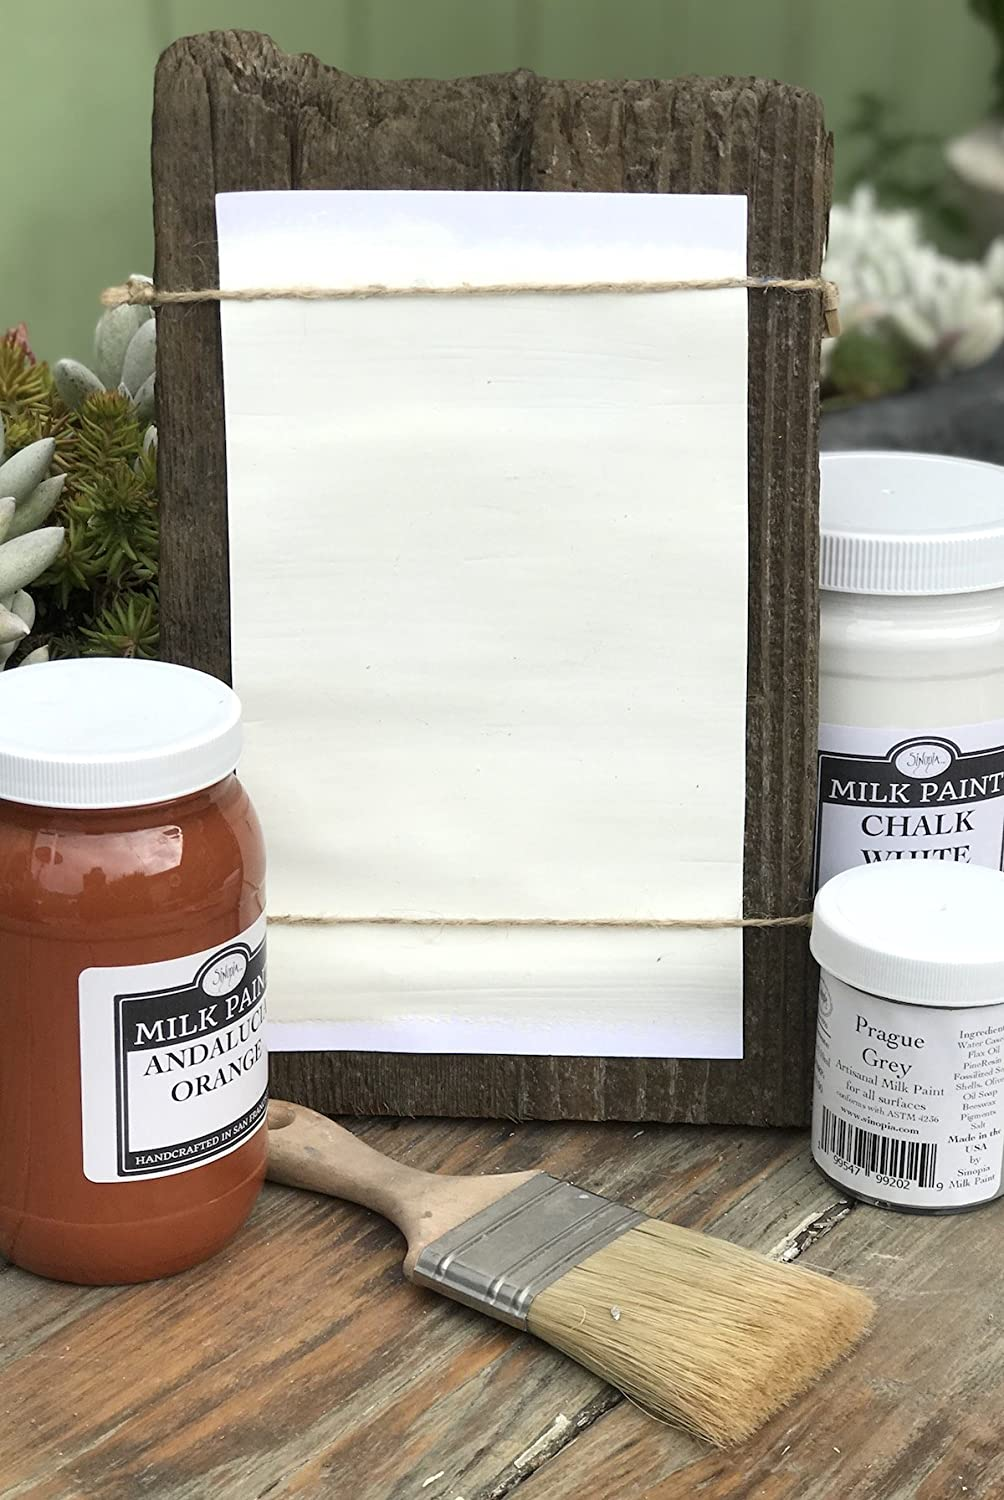 Sinopia All Natural Artisanal Our shop most popular 70% OFF Outlet Milk 32oz. White Paint Chalk